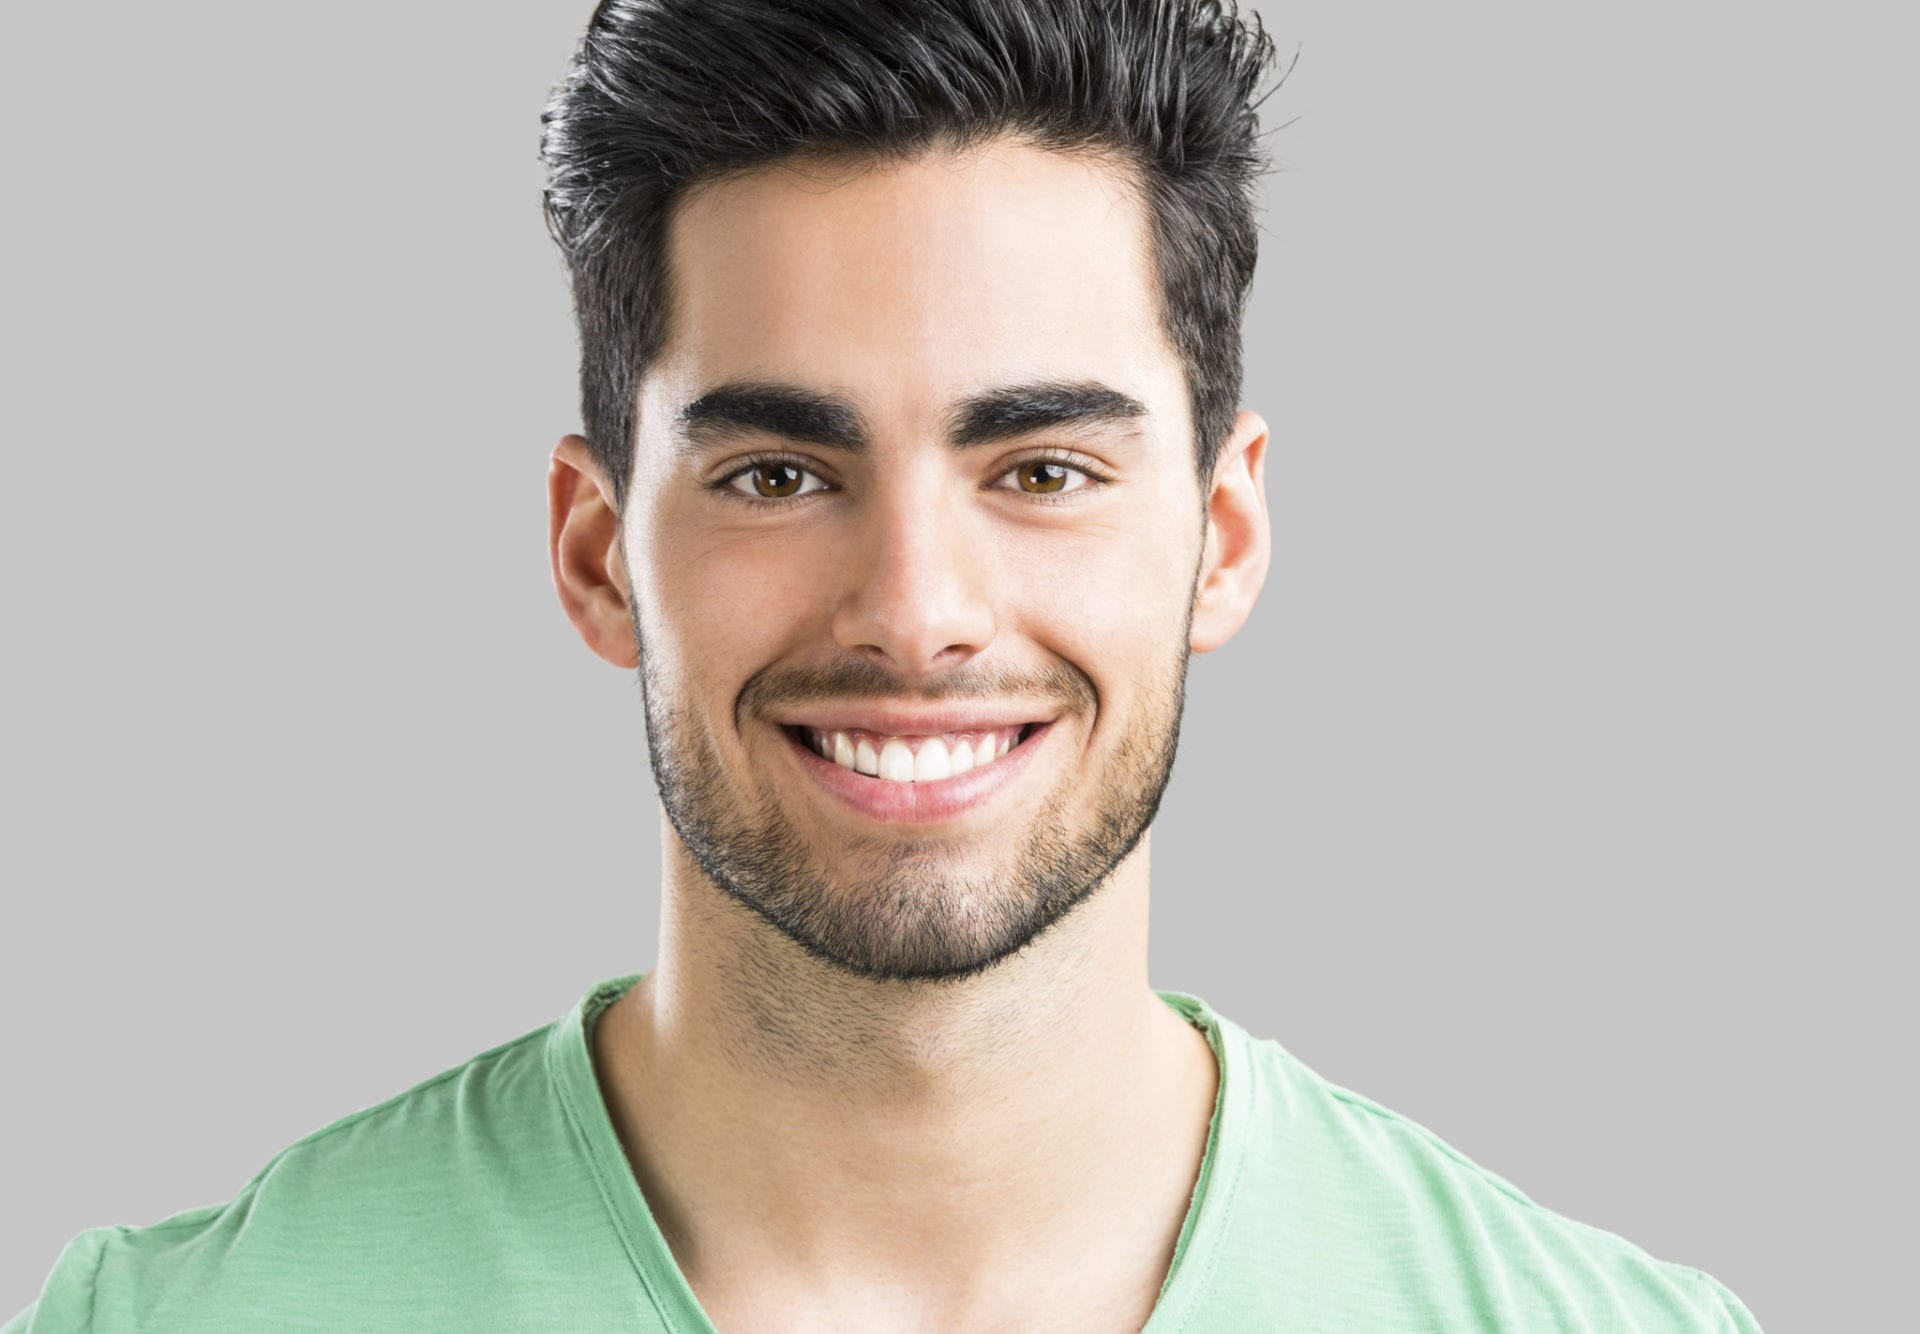 A man that saw a cosmetic dentist in Fort Mill, SC